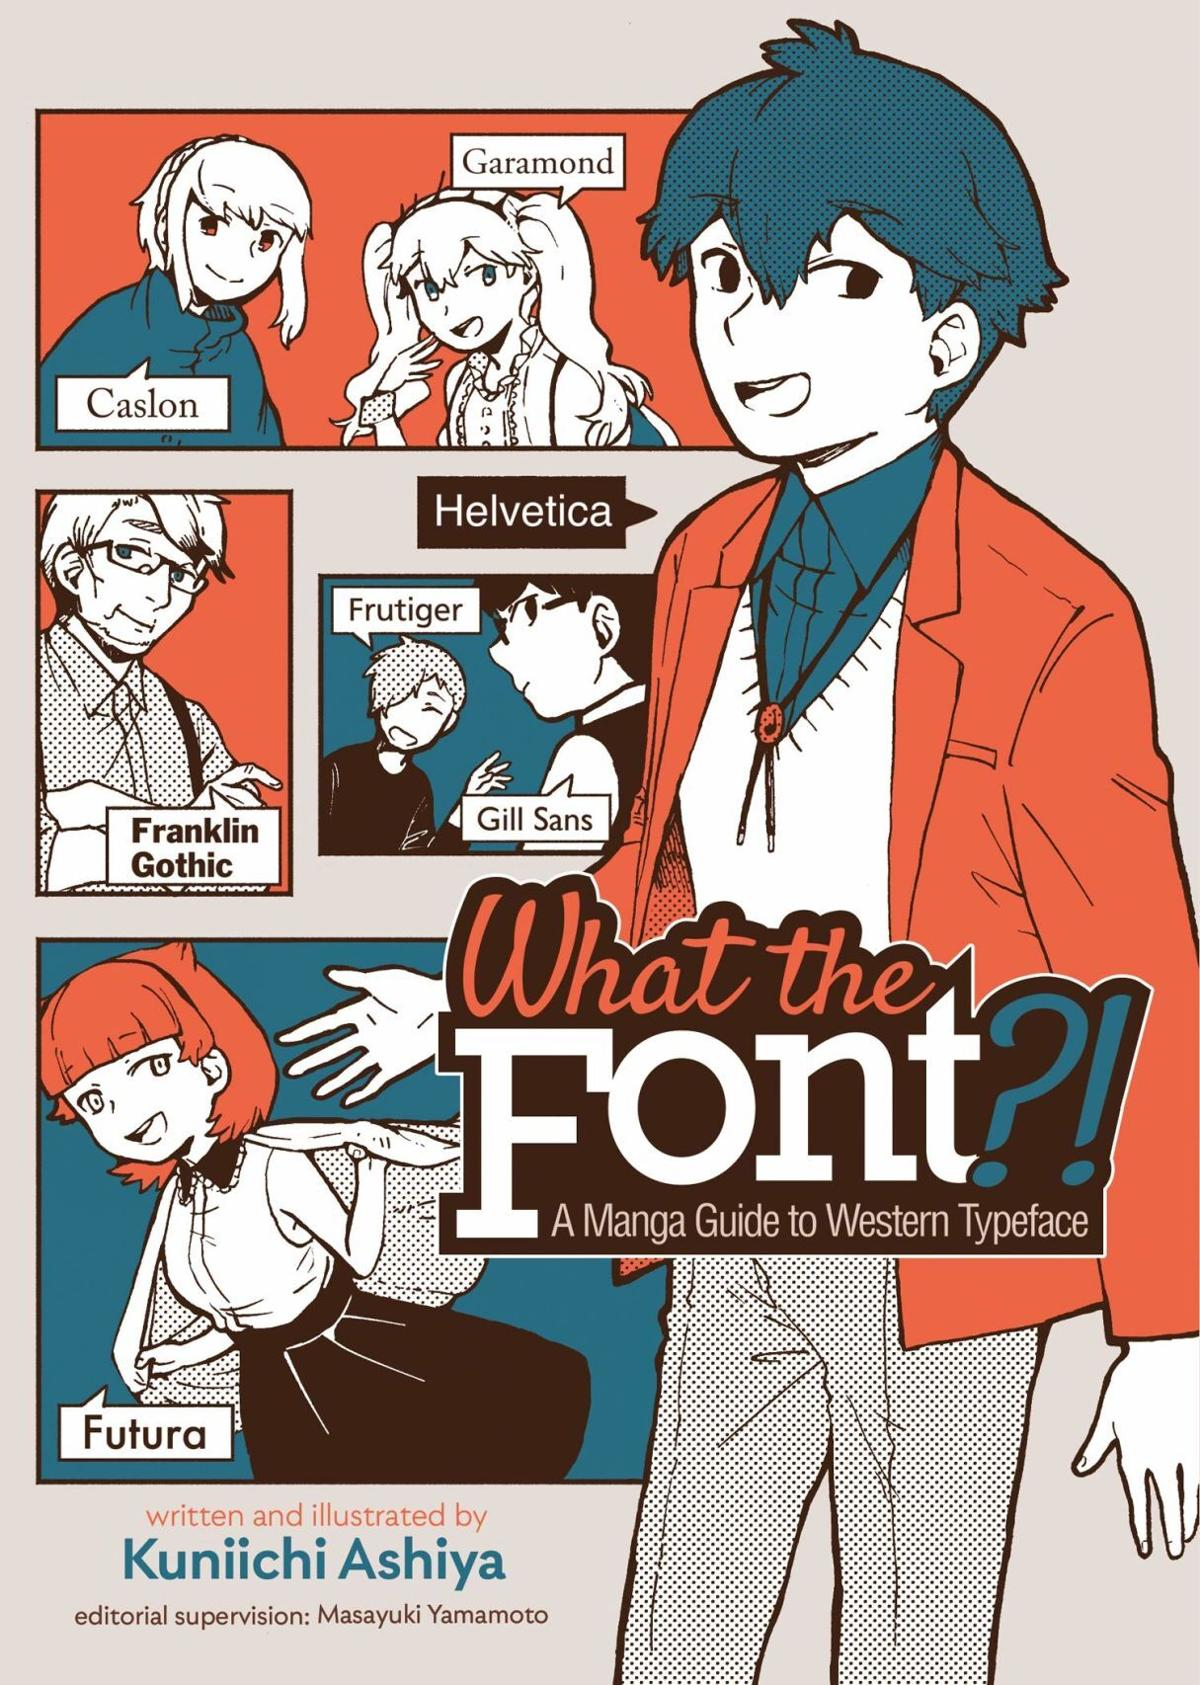 'What the Font?!'